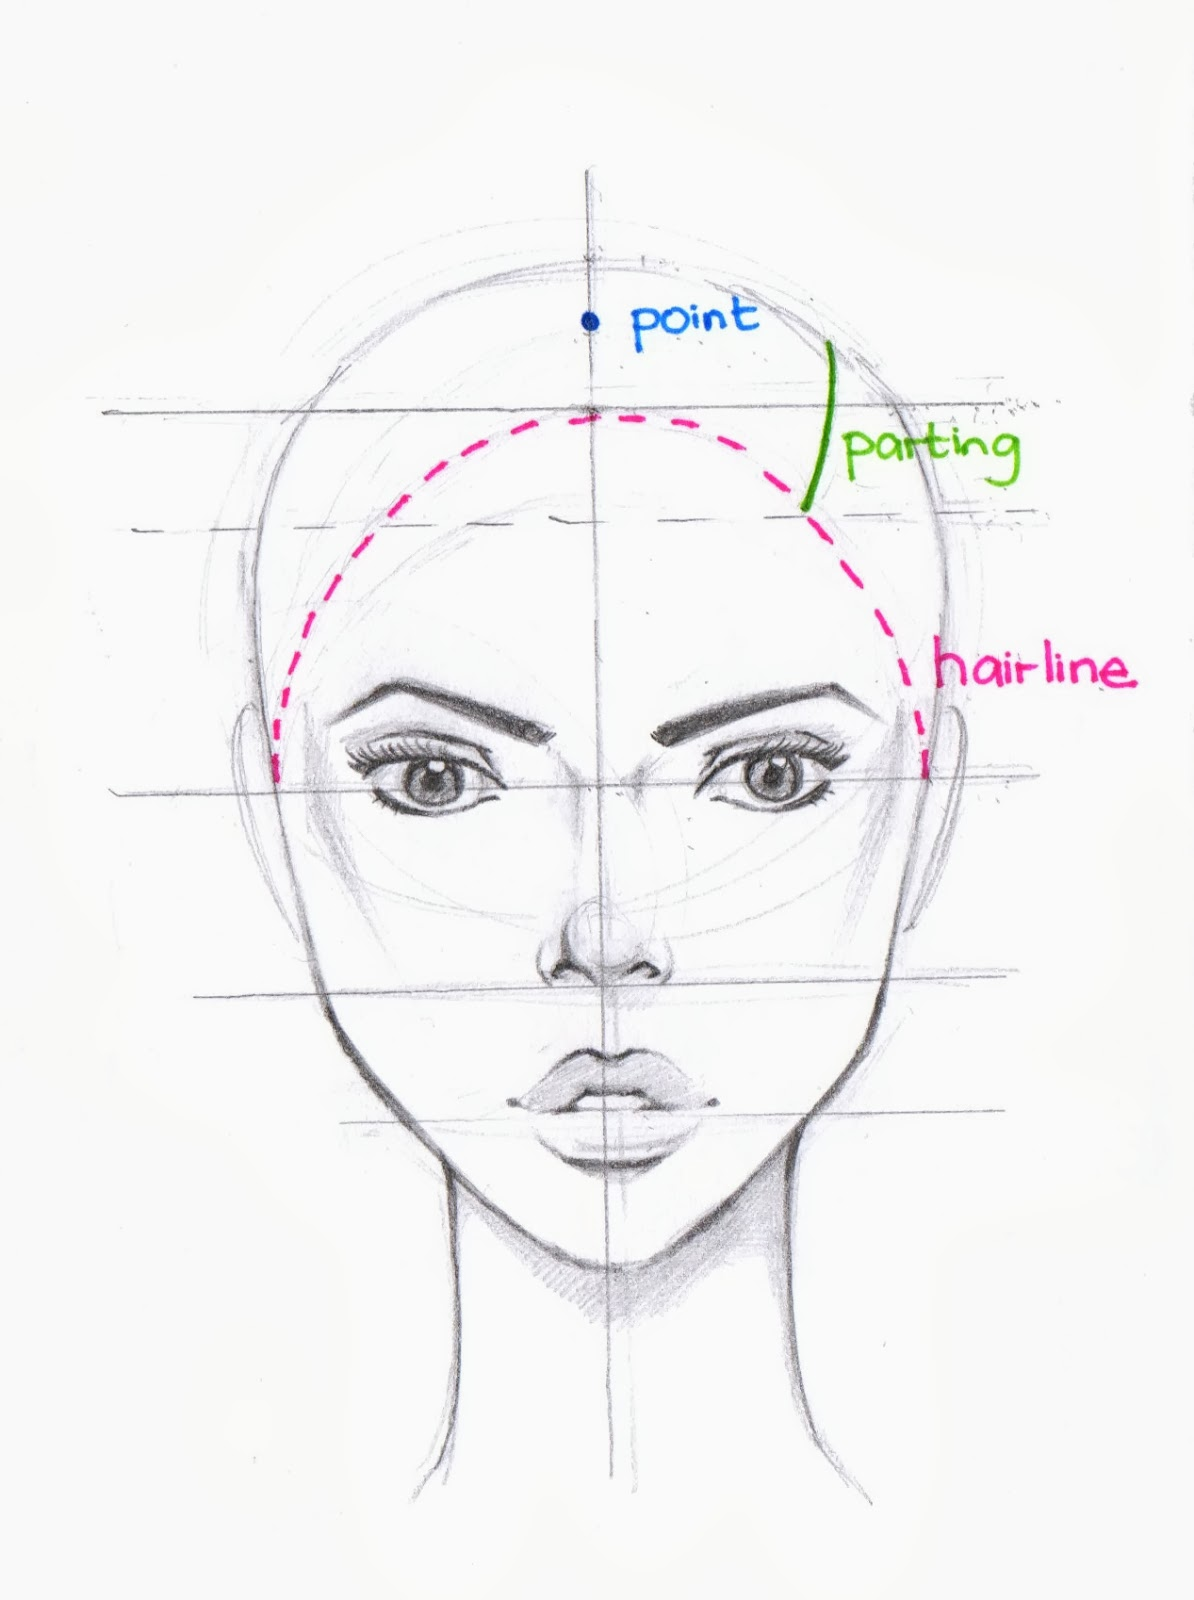 Body Language  Clues From The Eyes